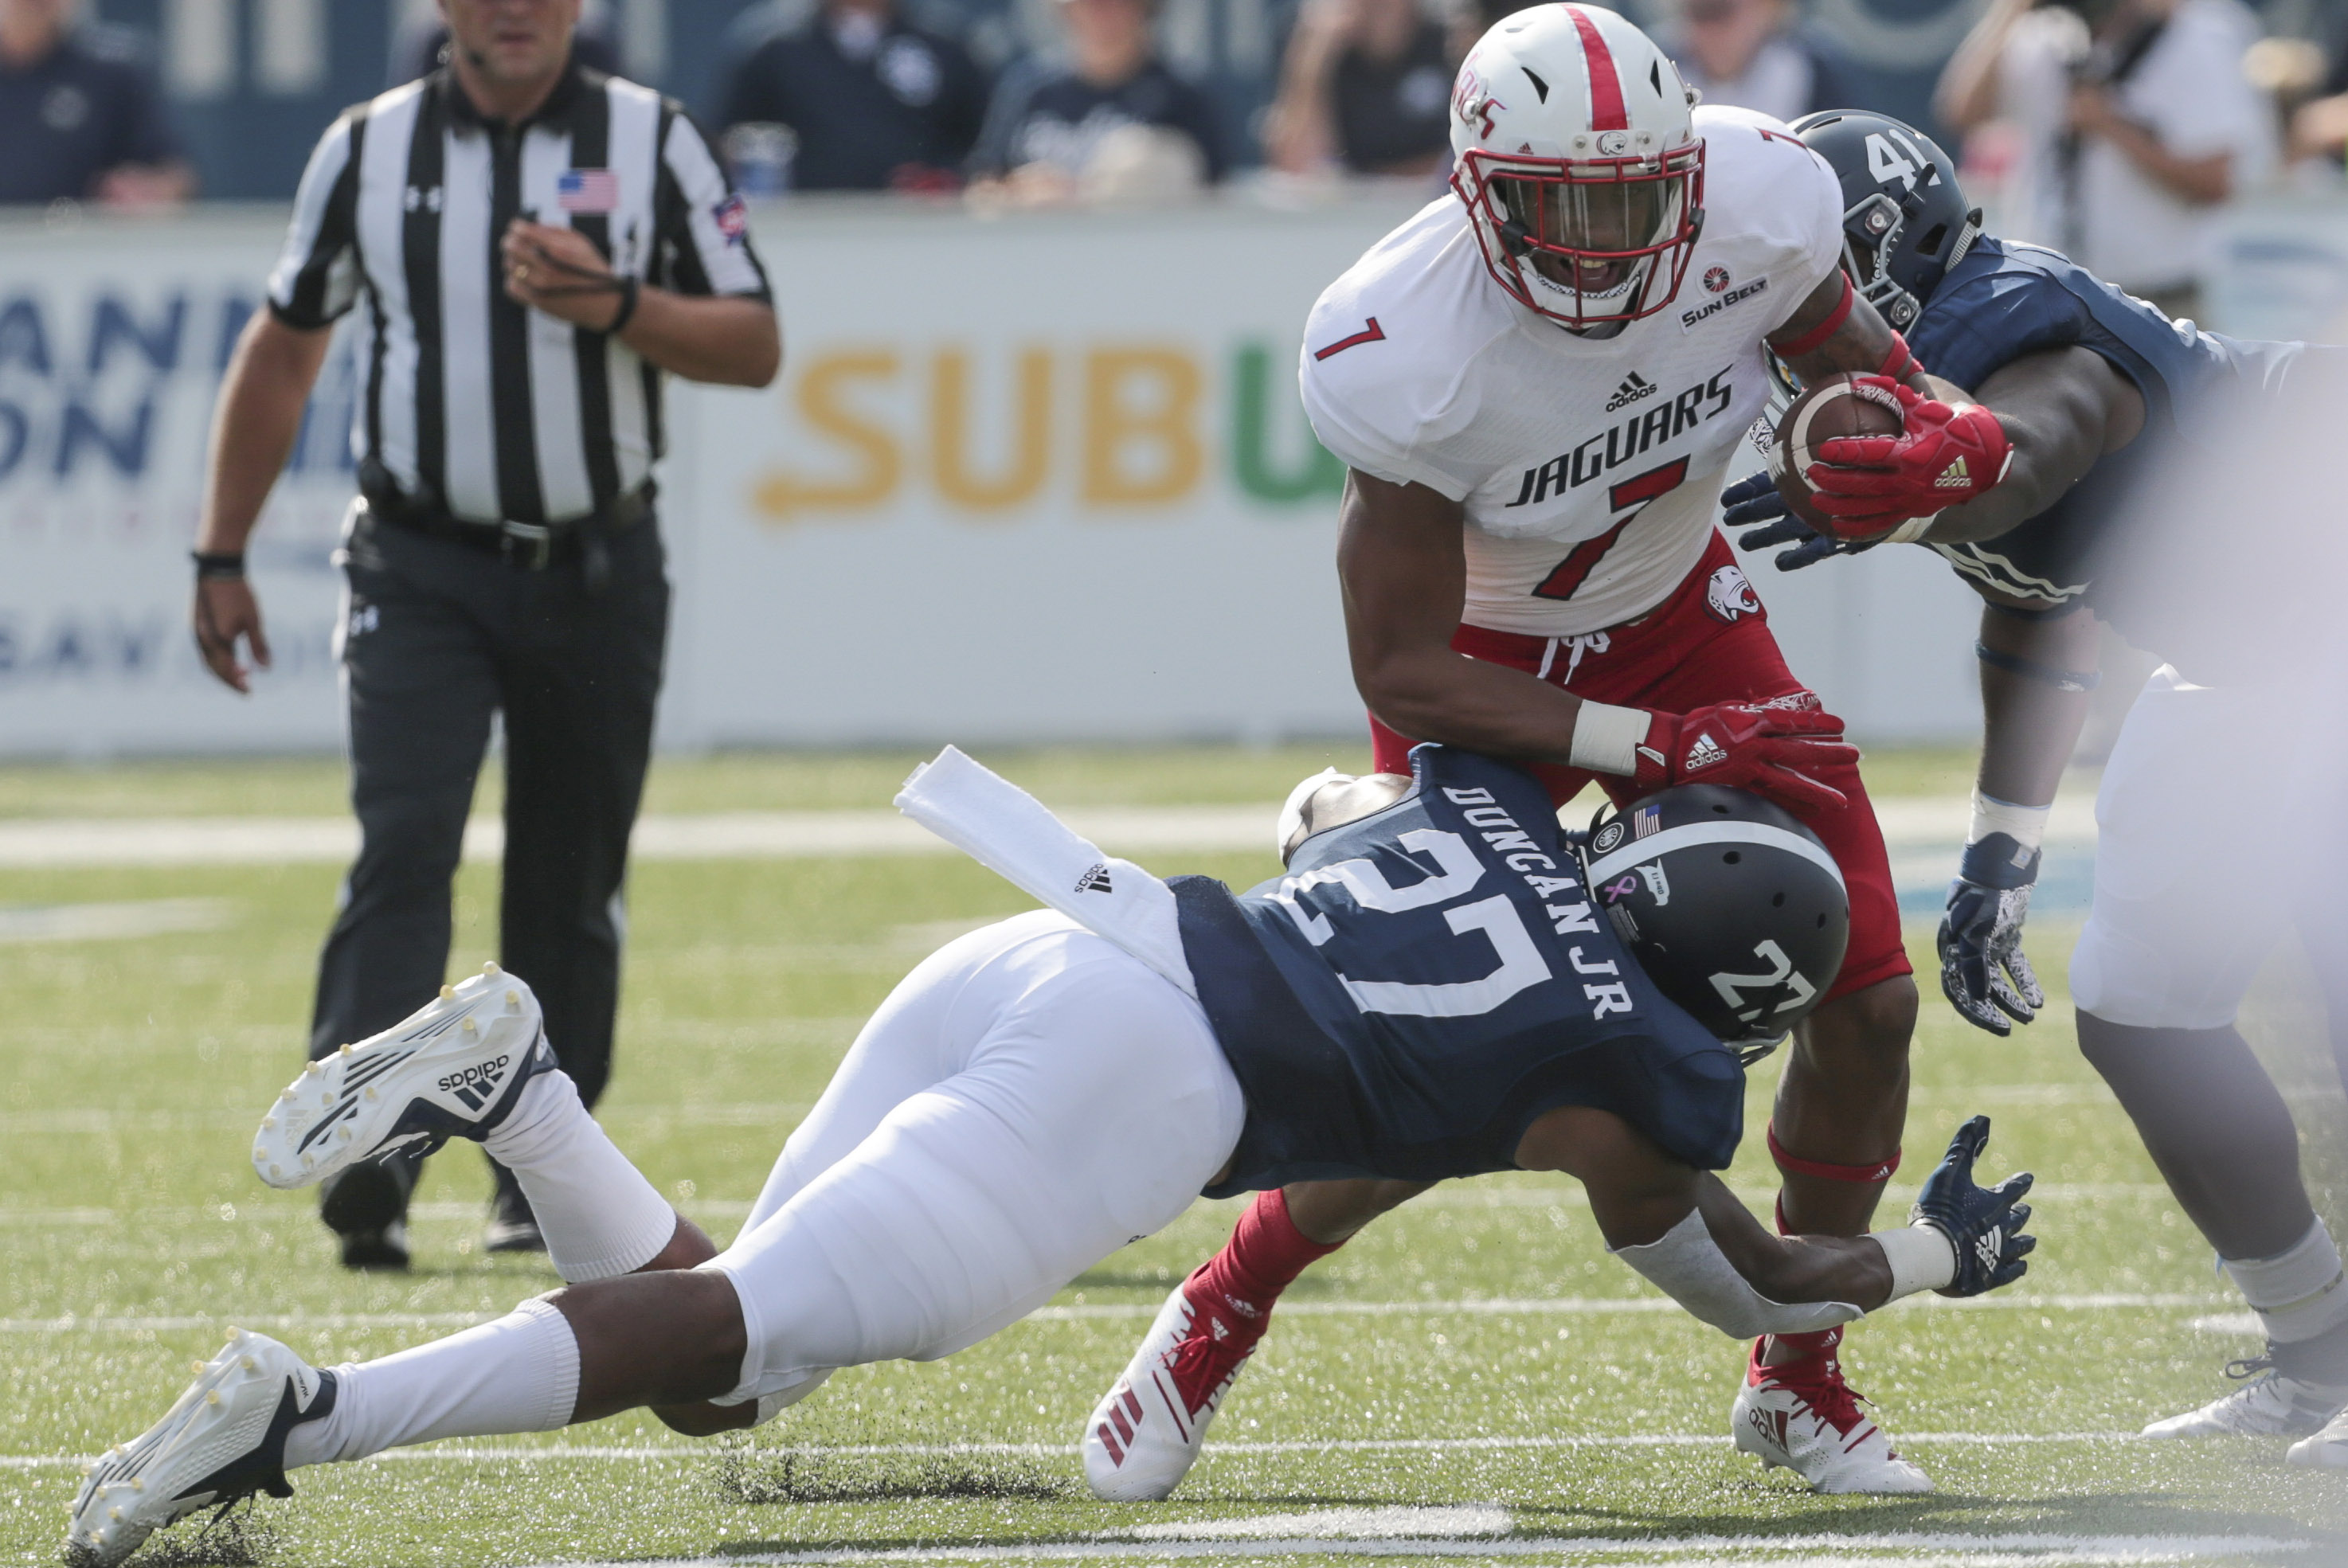 Malik Stanley scored one of South Alabama's two touchdowns in last season's win over Troy. (Bobby McDuffie, South Alabama Strategic Communications)